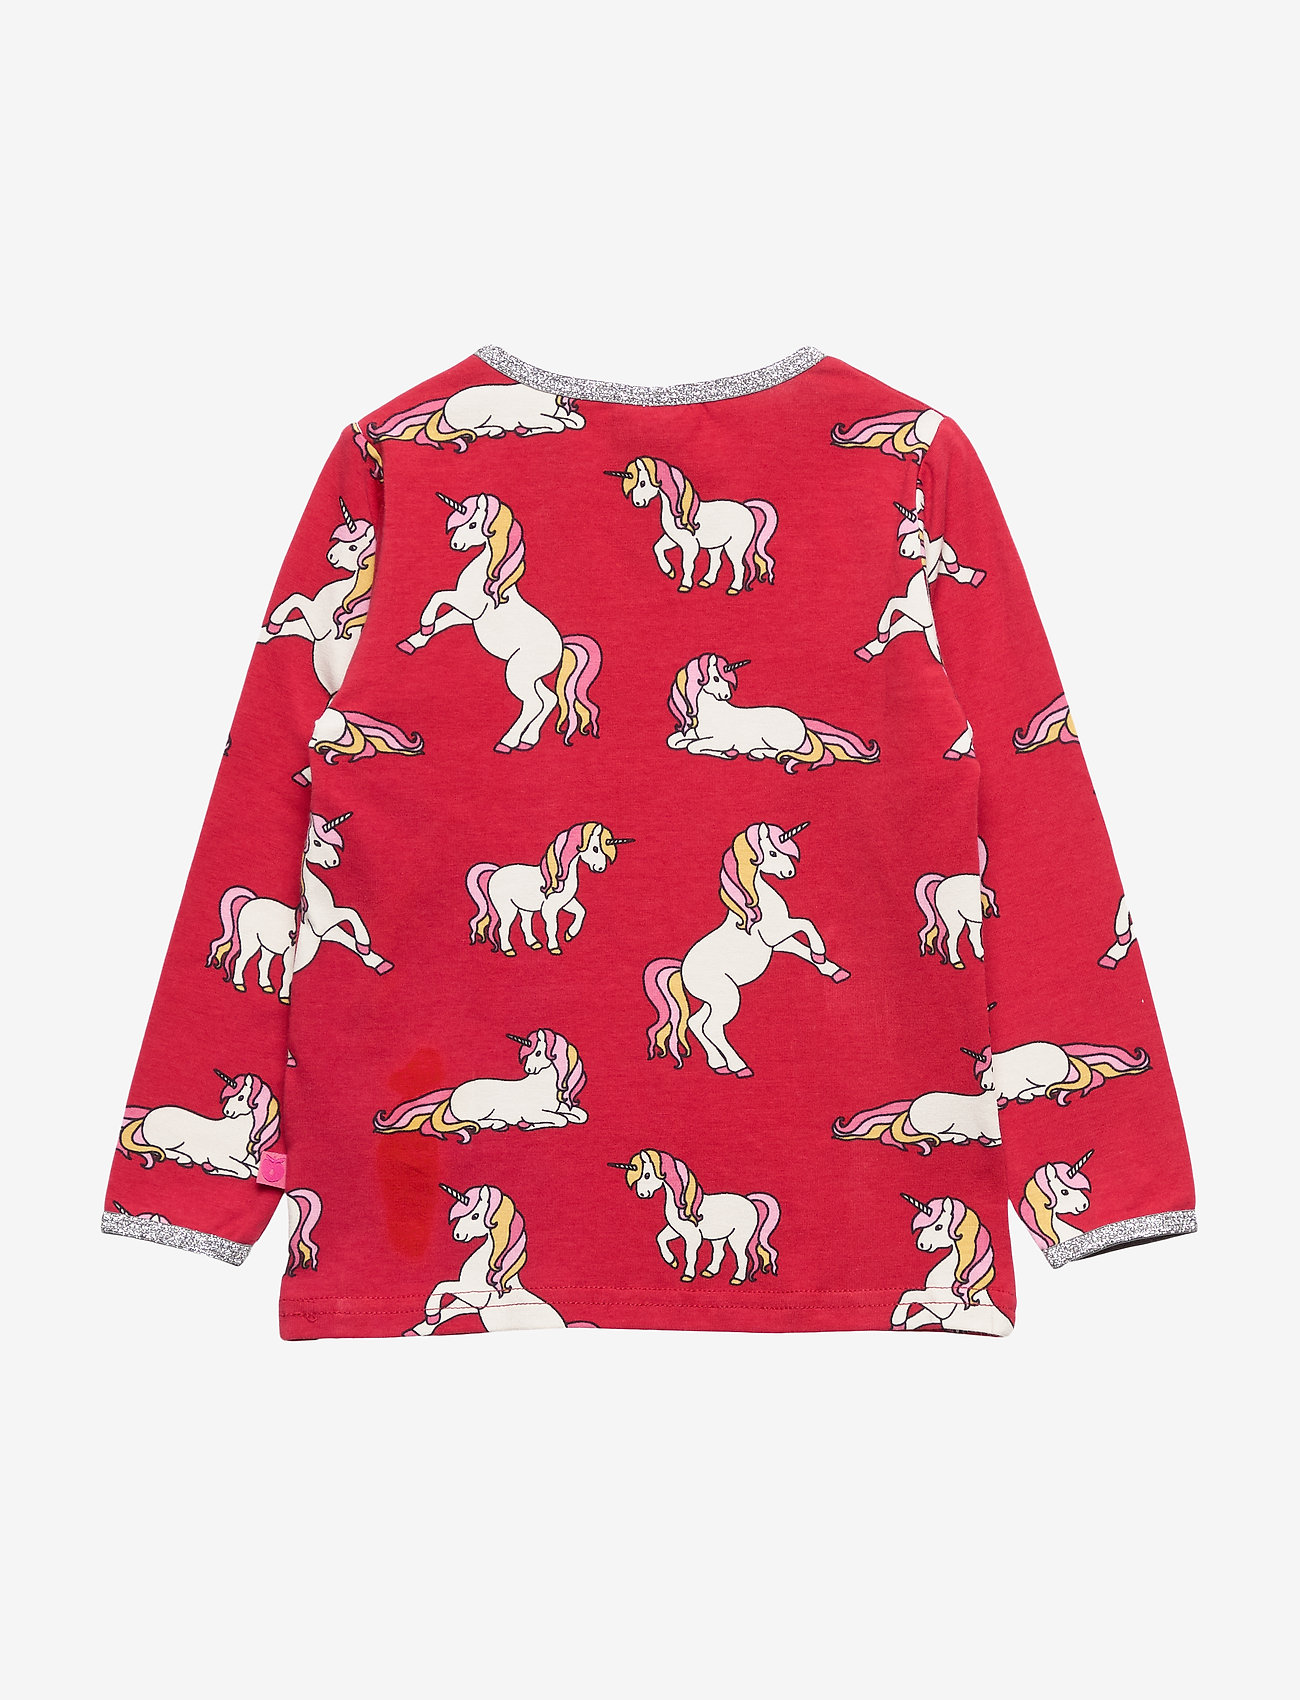 Småfolk T-shirt Ls. Unicorn - Överdelar Dark Red